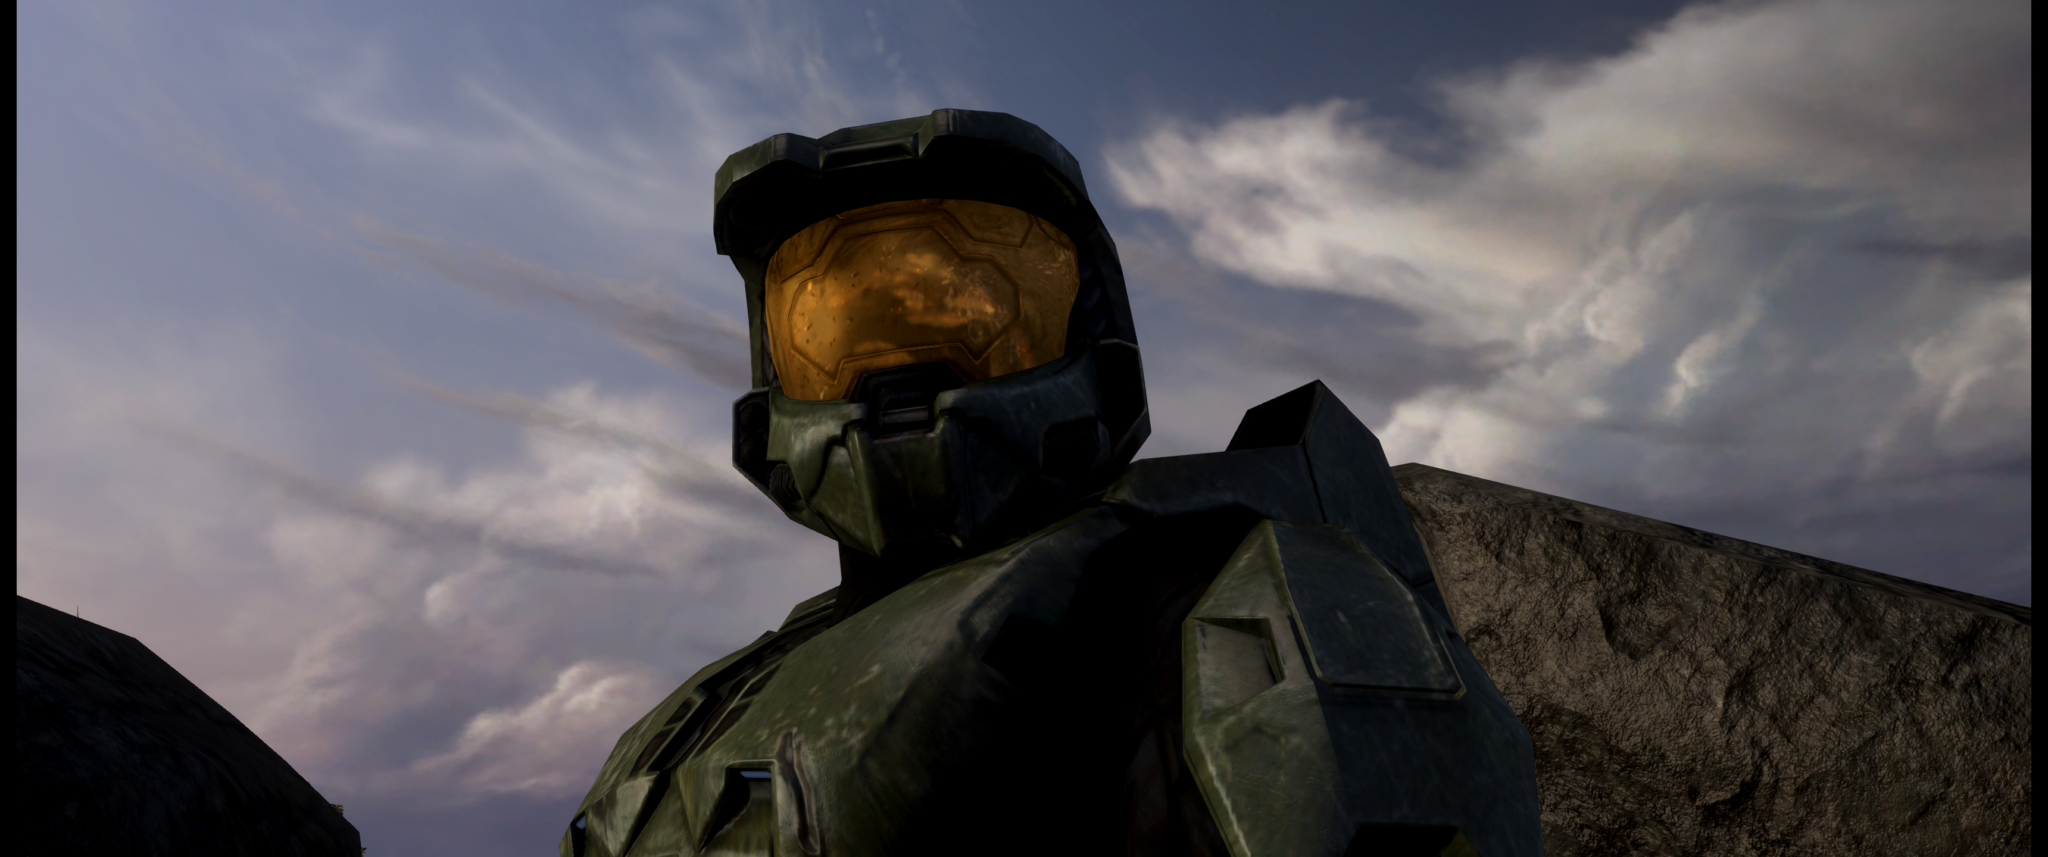 Halo: The Master Chief Collection Brought Tons of New Players to the Series